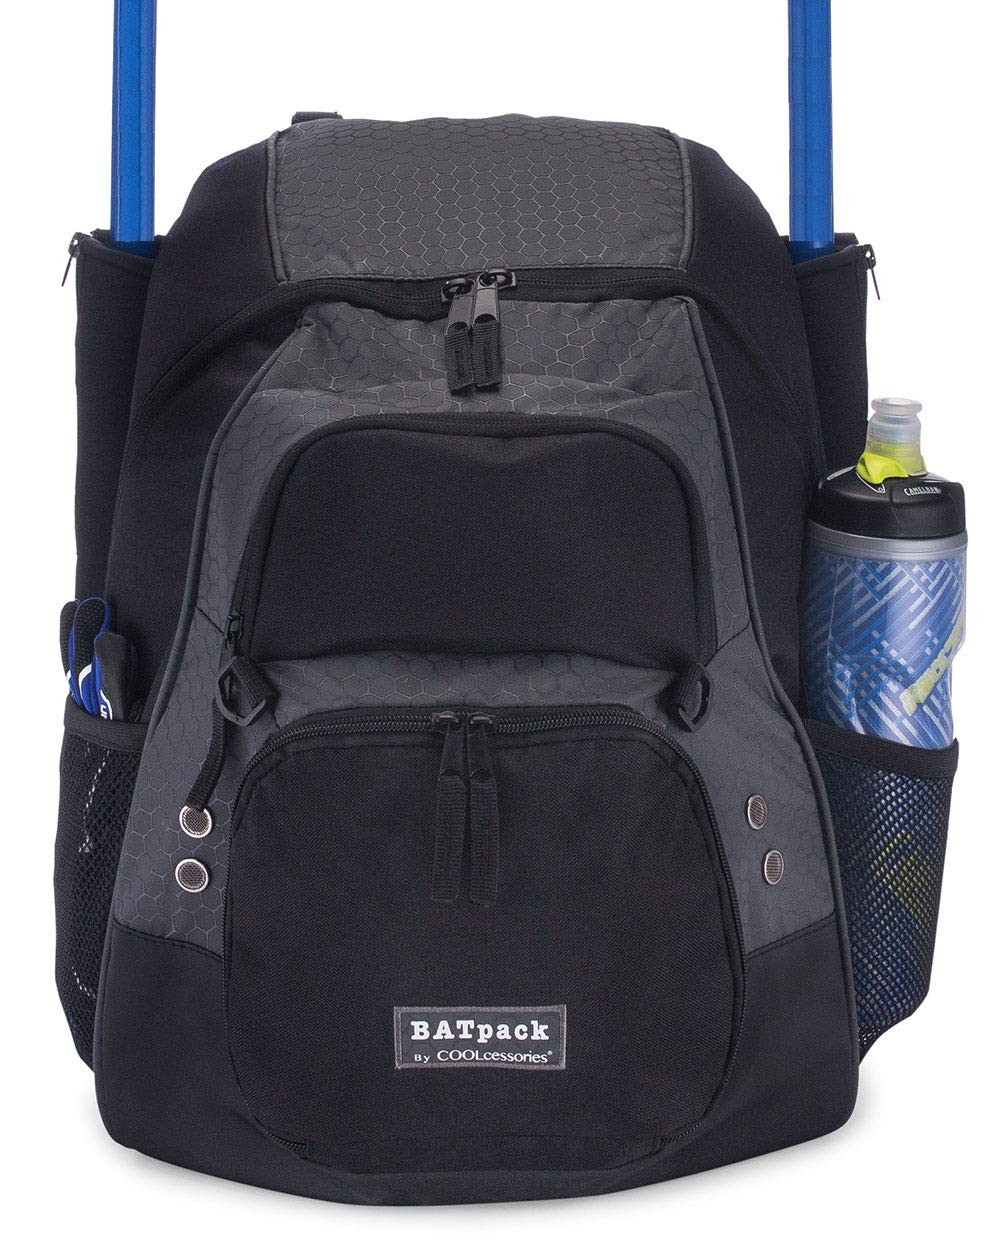 COOLcessories Bat Bag Backpack - A Bat Bag That Fits All Your Gear - Use as a Baseball Bag or Softball Bag - Includes a 3 Position External Cargo Net